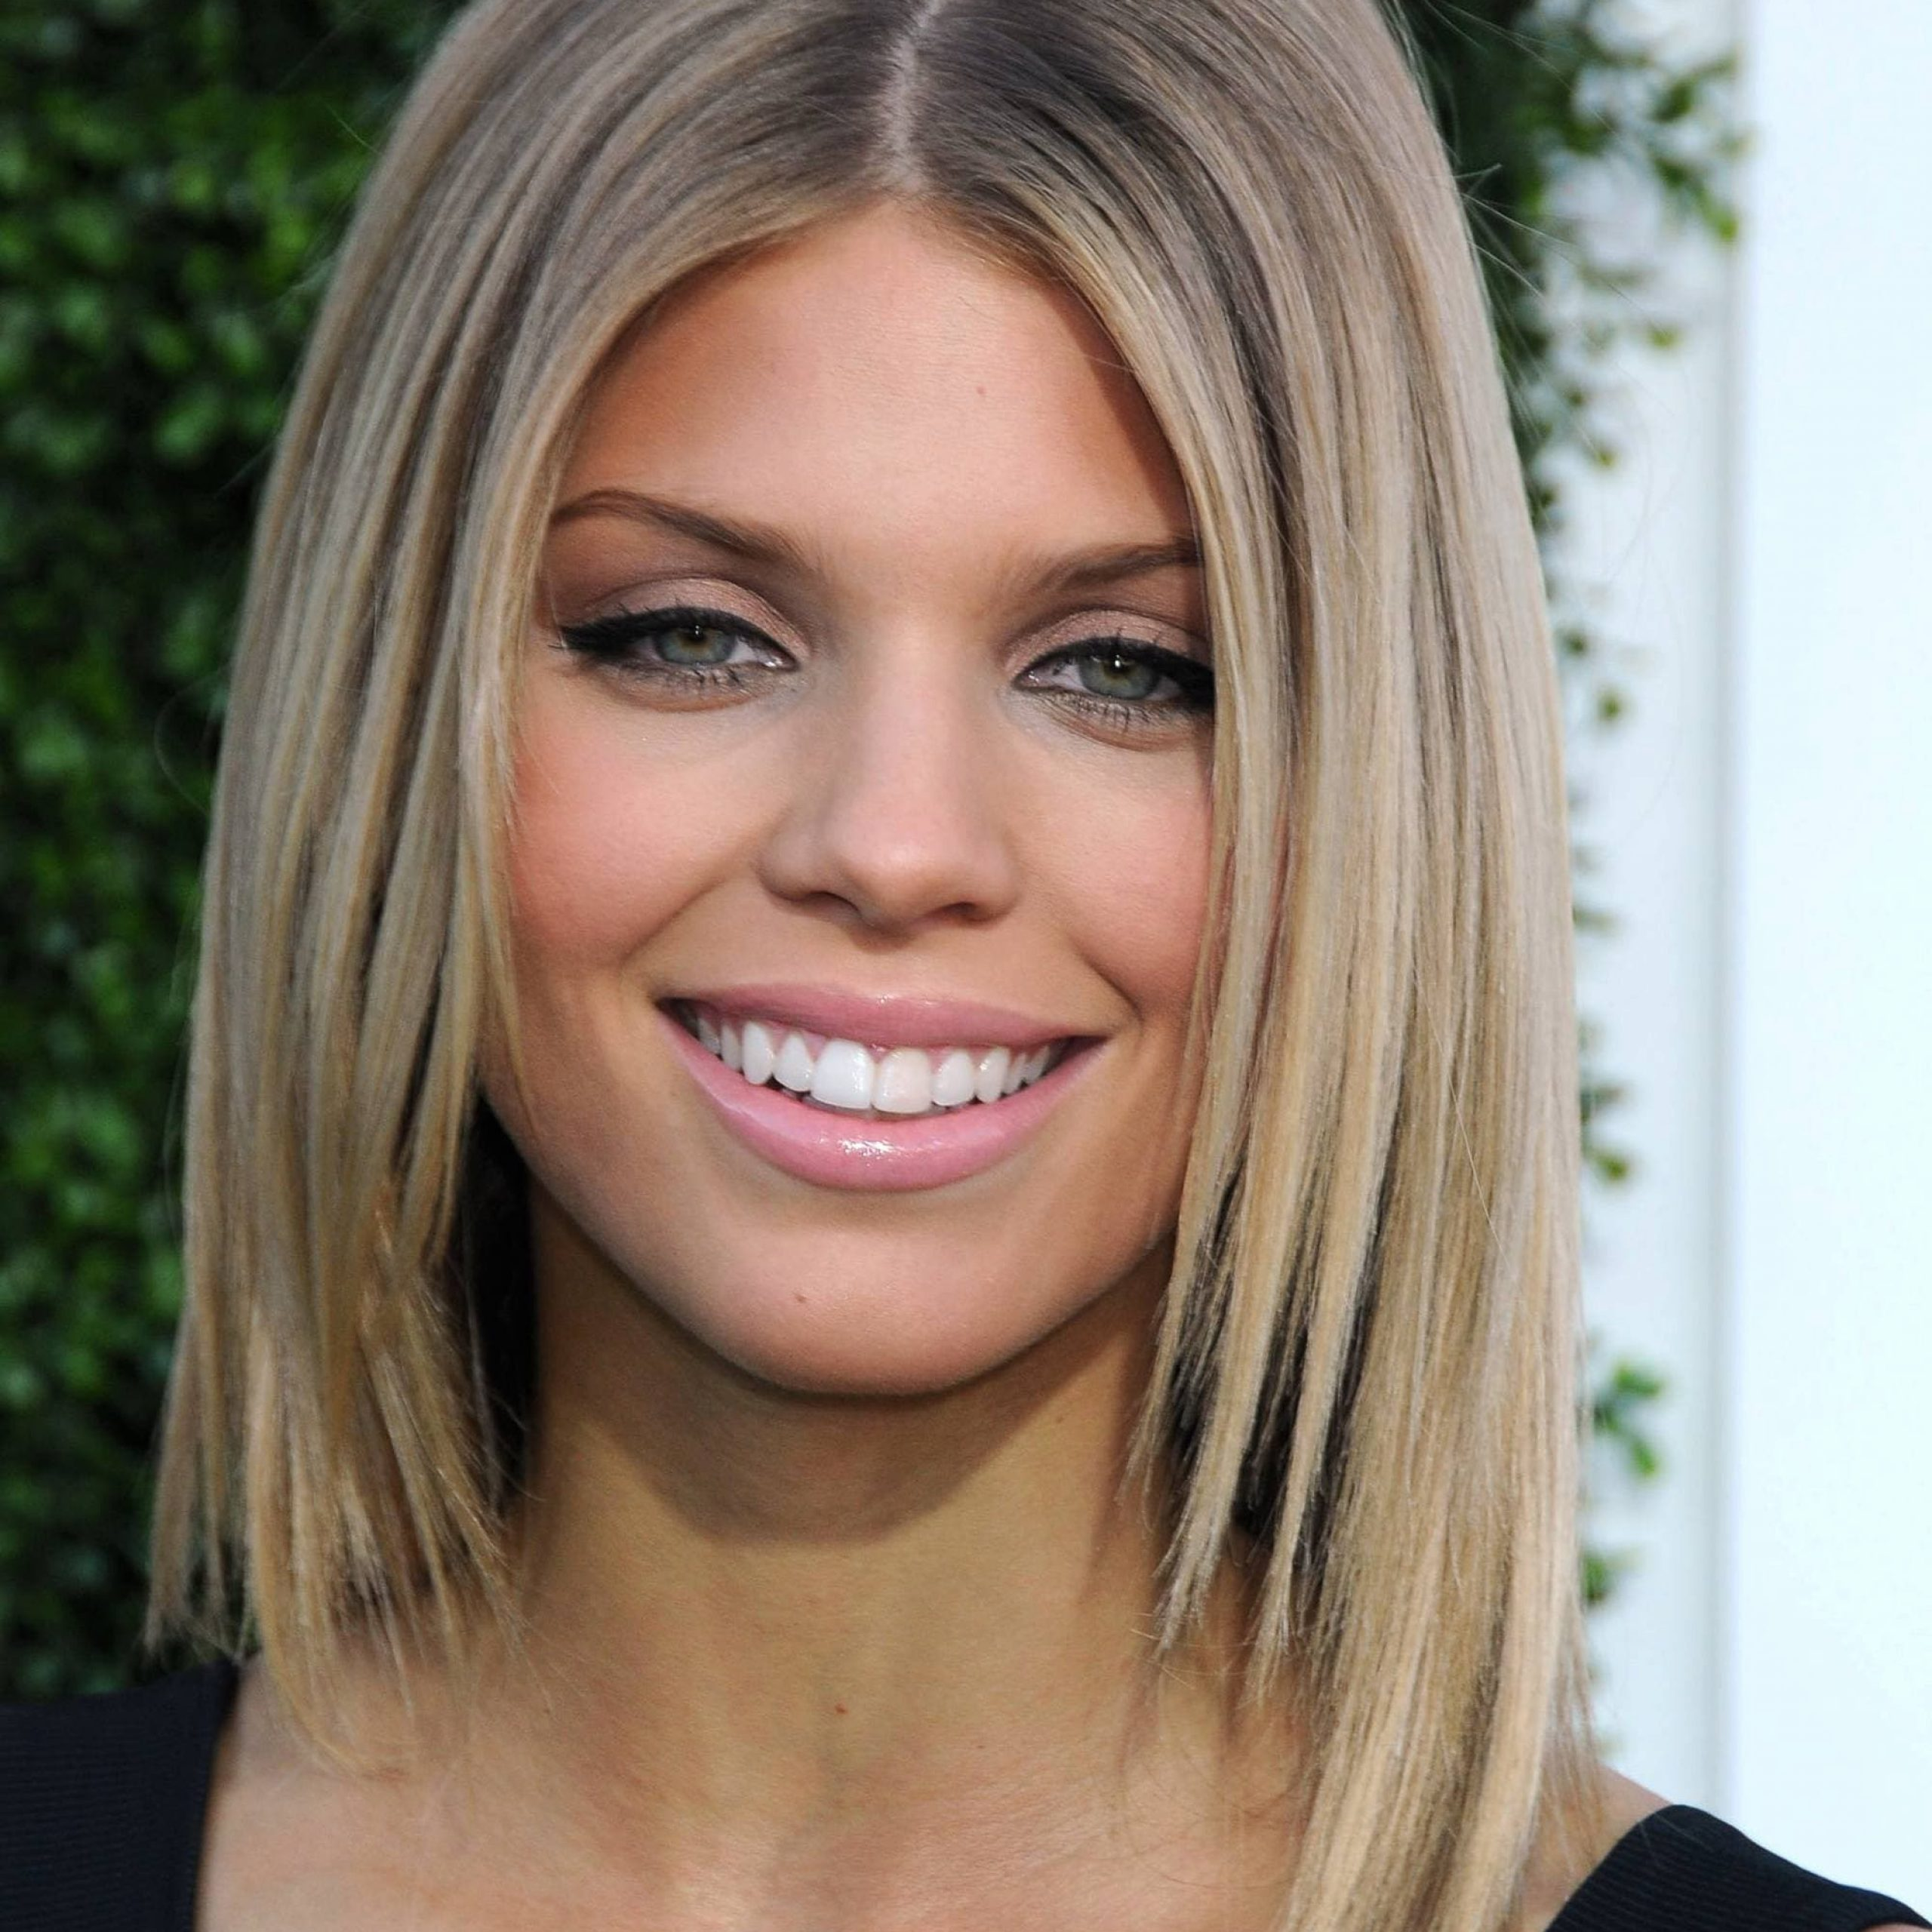 20 Best Shoulder Length Layered Haircut Photos (View 15 of 20)